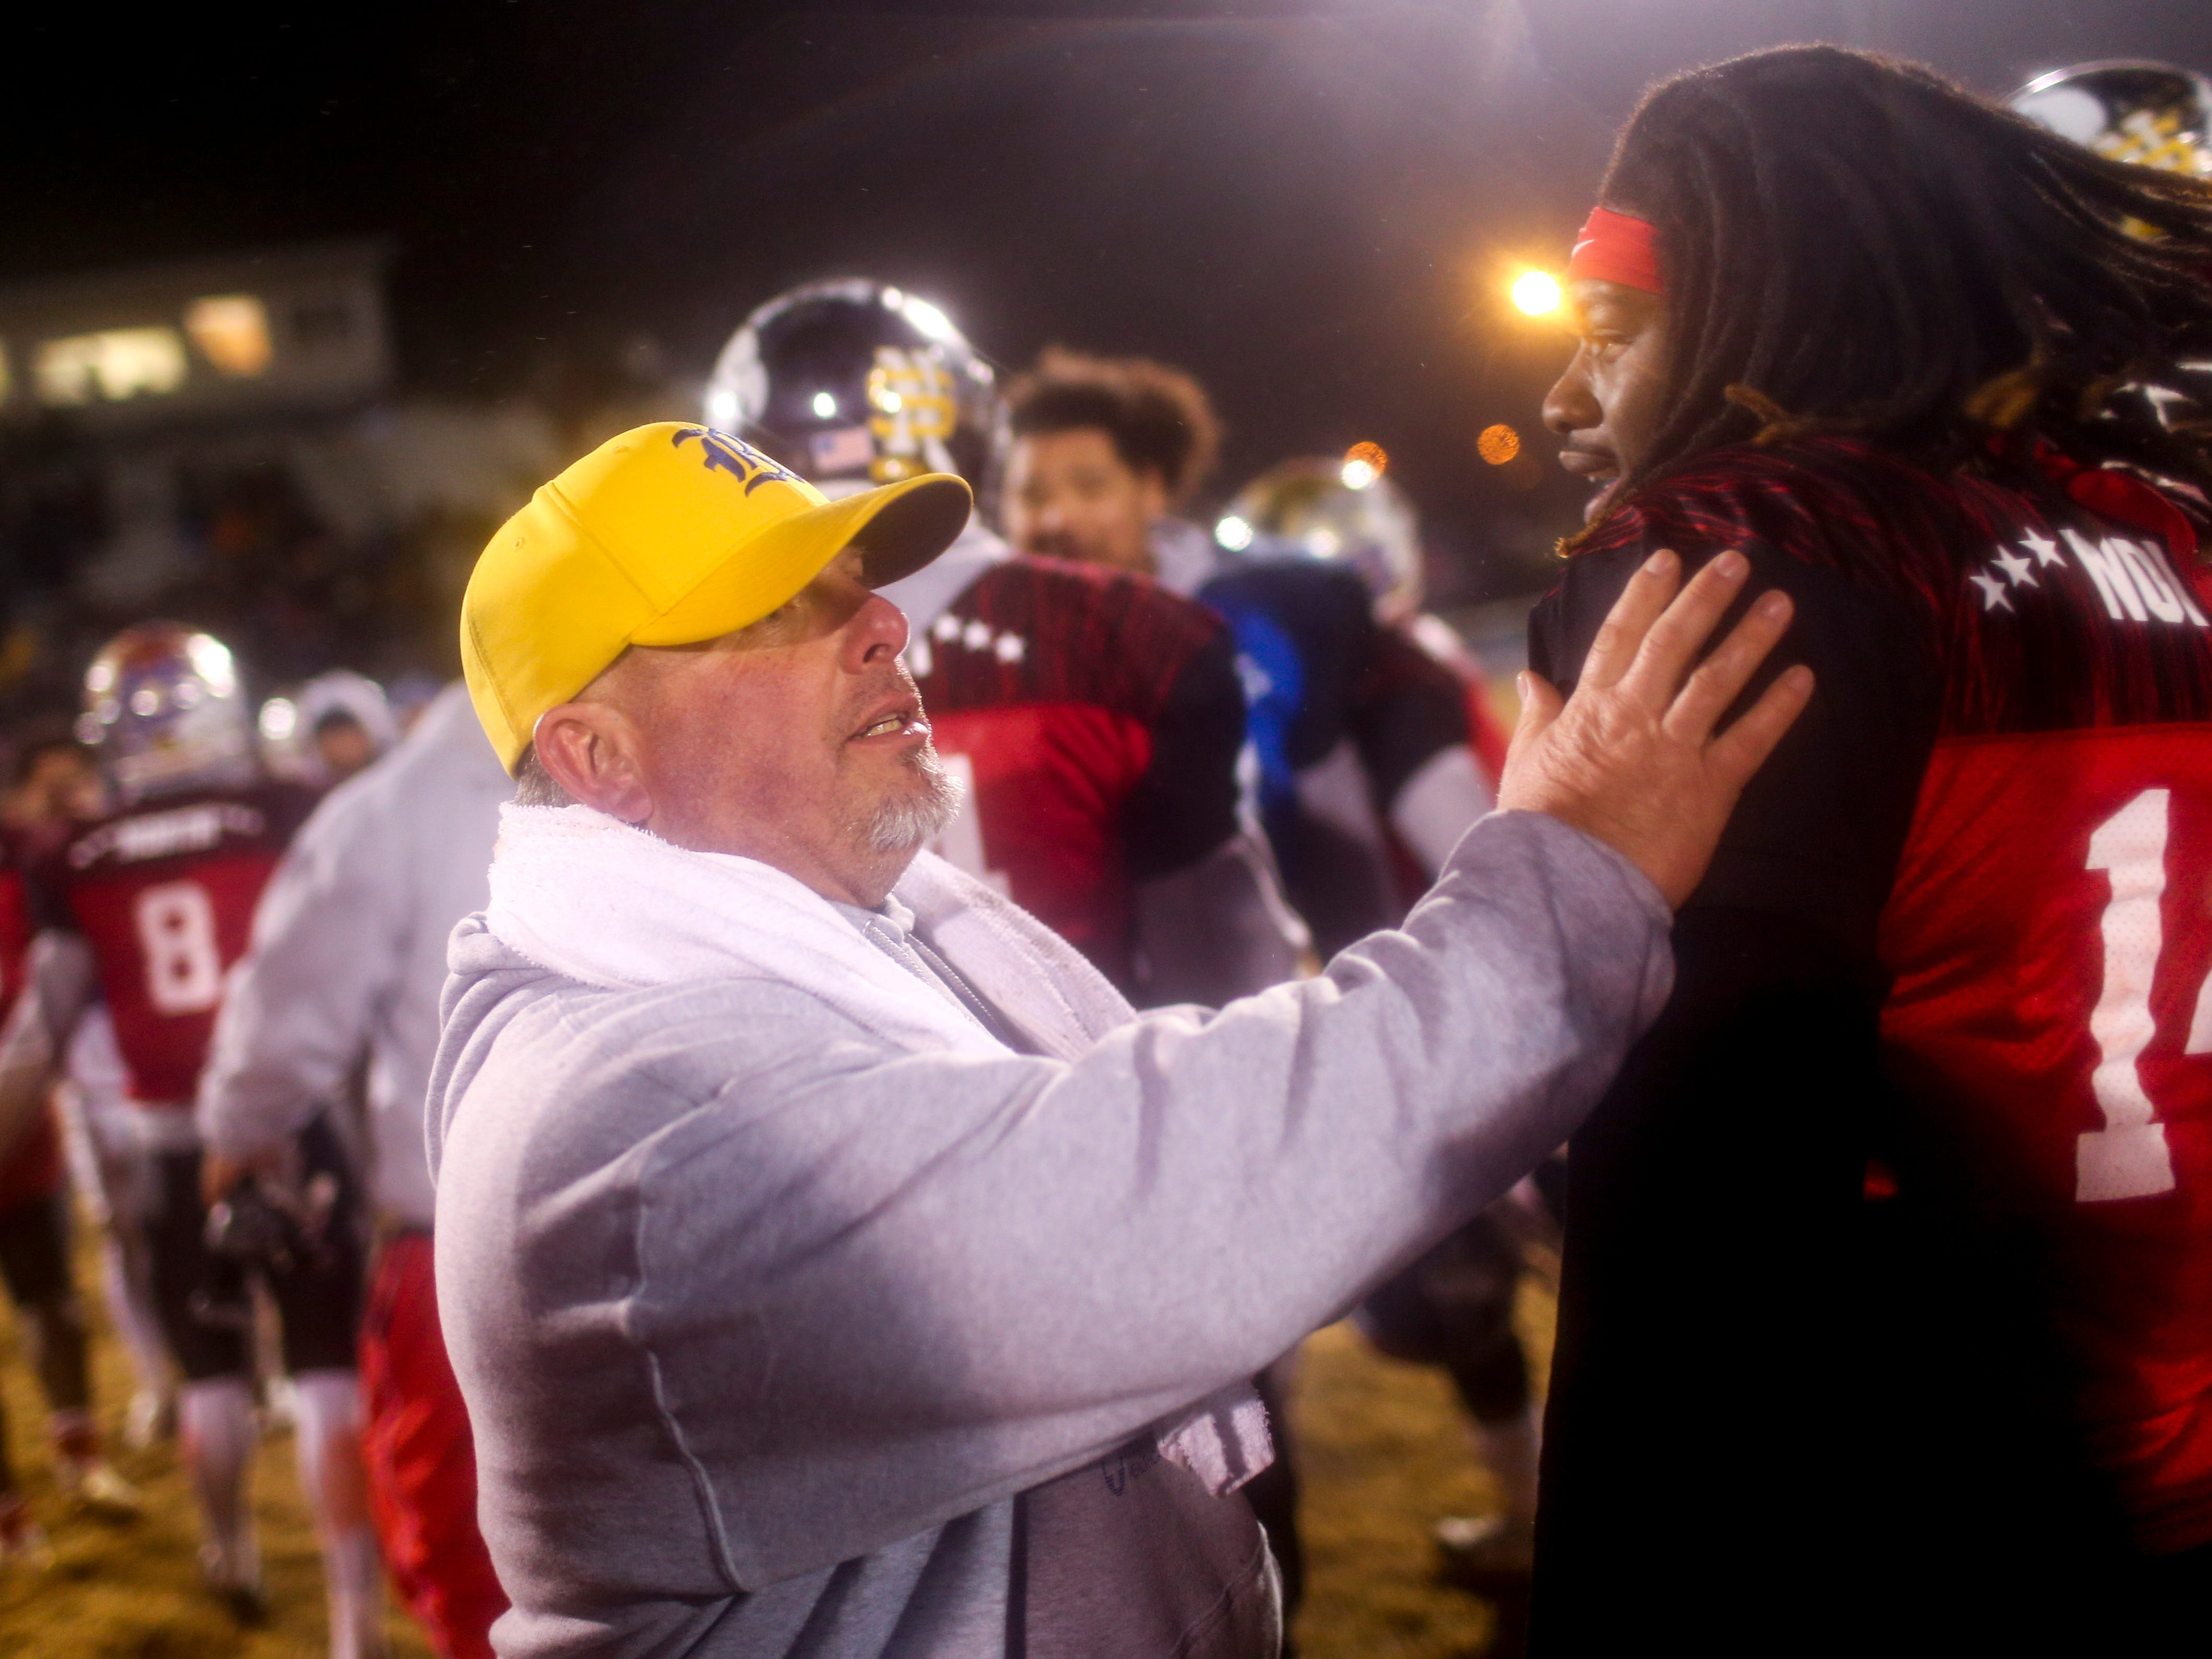 Riverside's head coach Johnnie Frost shakes hands with passing North team players during the West Tennessee All-Star football game at University School of Jackson in Jackson, Tenn., on Friday, Dec. 7, 2018.